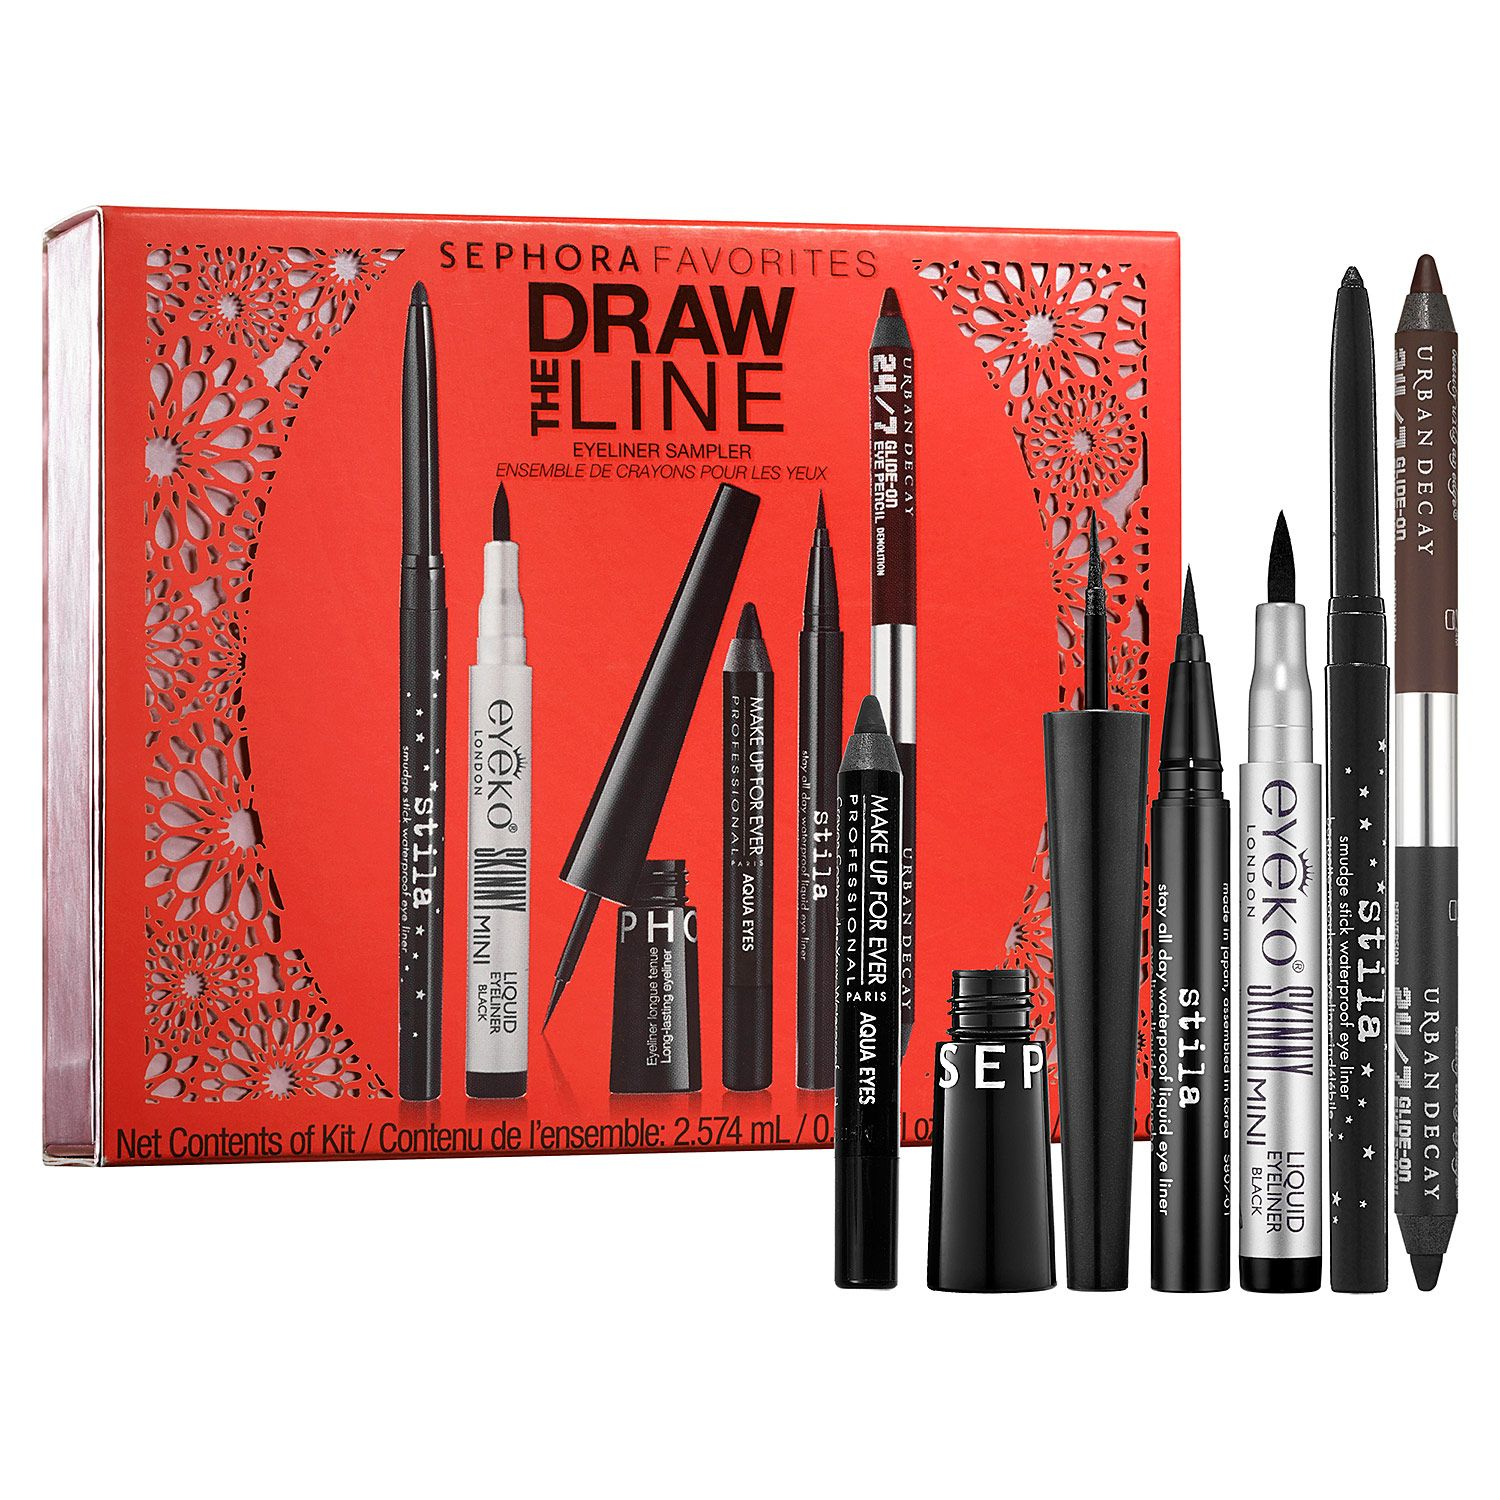 Sephora Draw the Line Eyeliner Collection